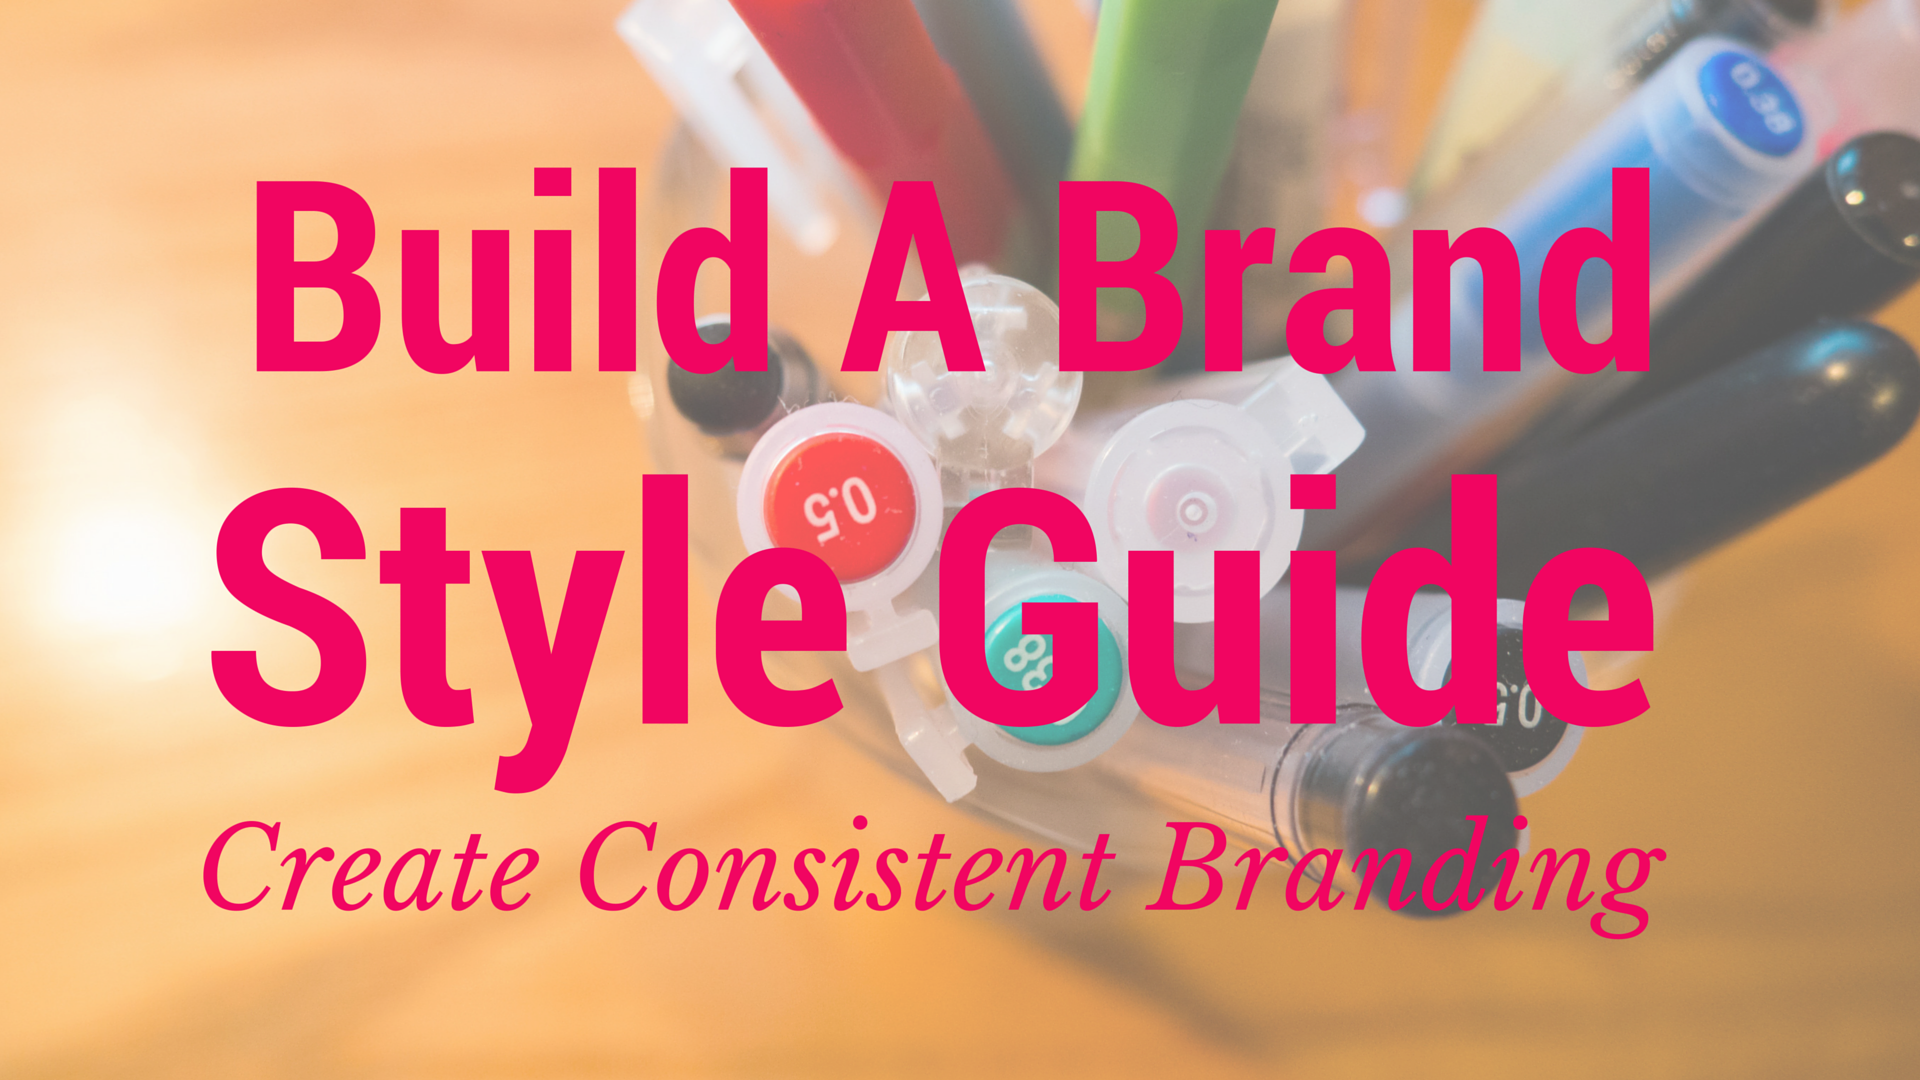 Create a Consistent Brand for Your Small Business!